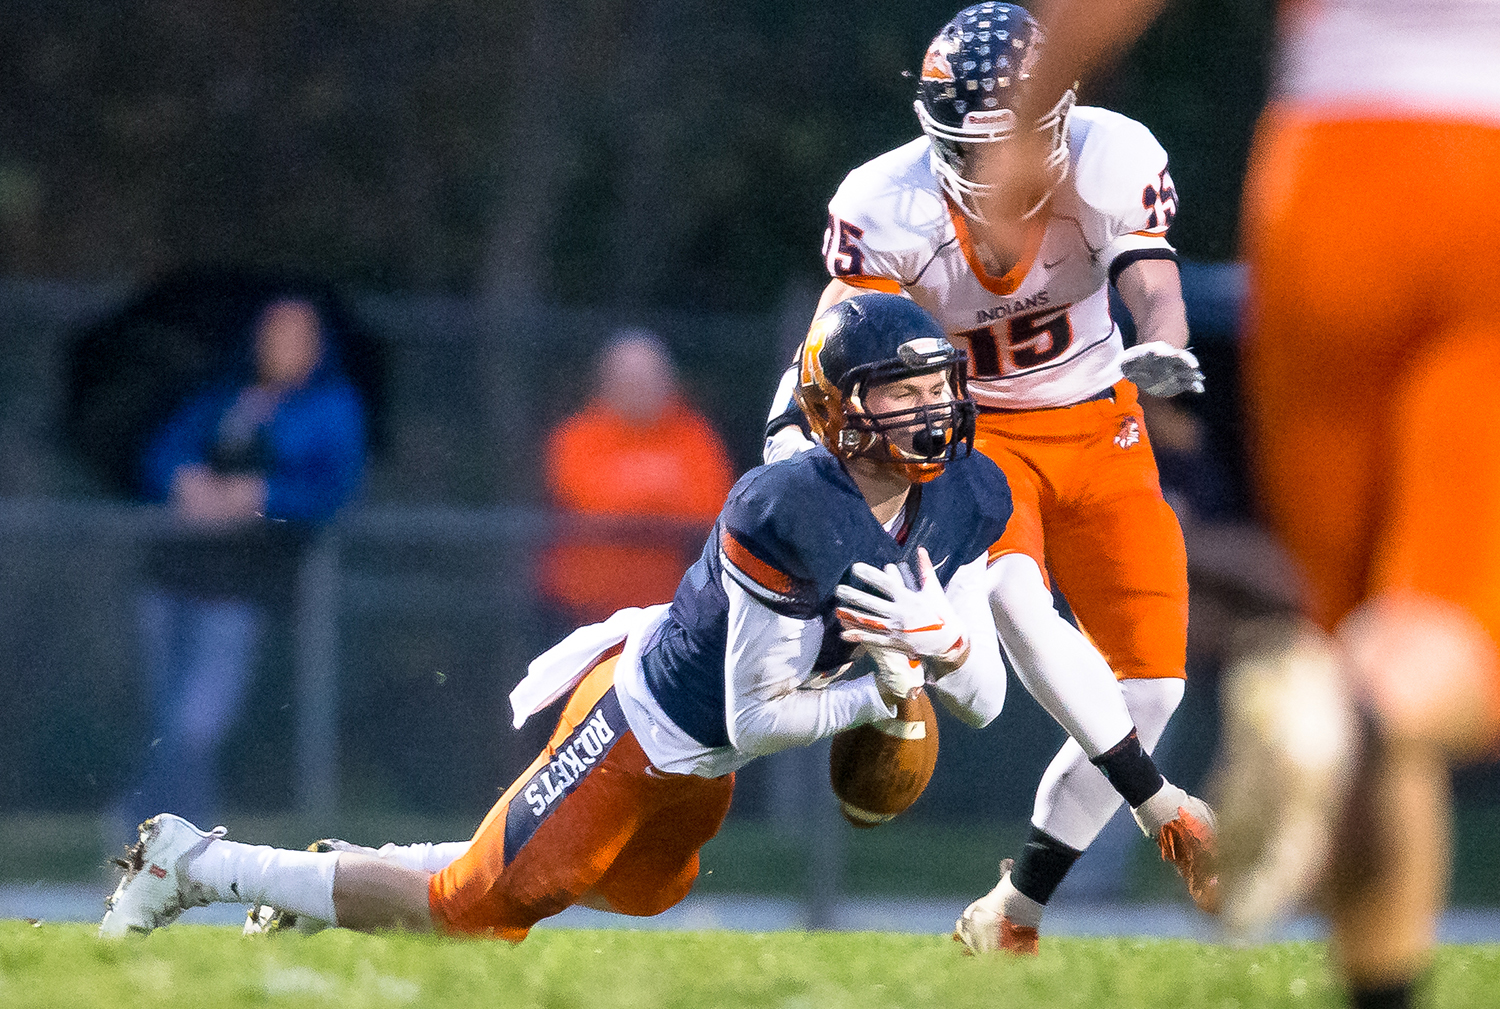 Rochester's Hayden Phillips (3) nearly intercepts a pass intended for Pontiac's Colton Clesson (15) in the first half in the second round of the Class 4A playoffs at Rochester High School, Saturday, Nov. 3, 2018, in Rochester, Ill. [Justin L. Fowler/The State Journal-Register]